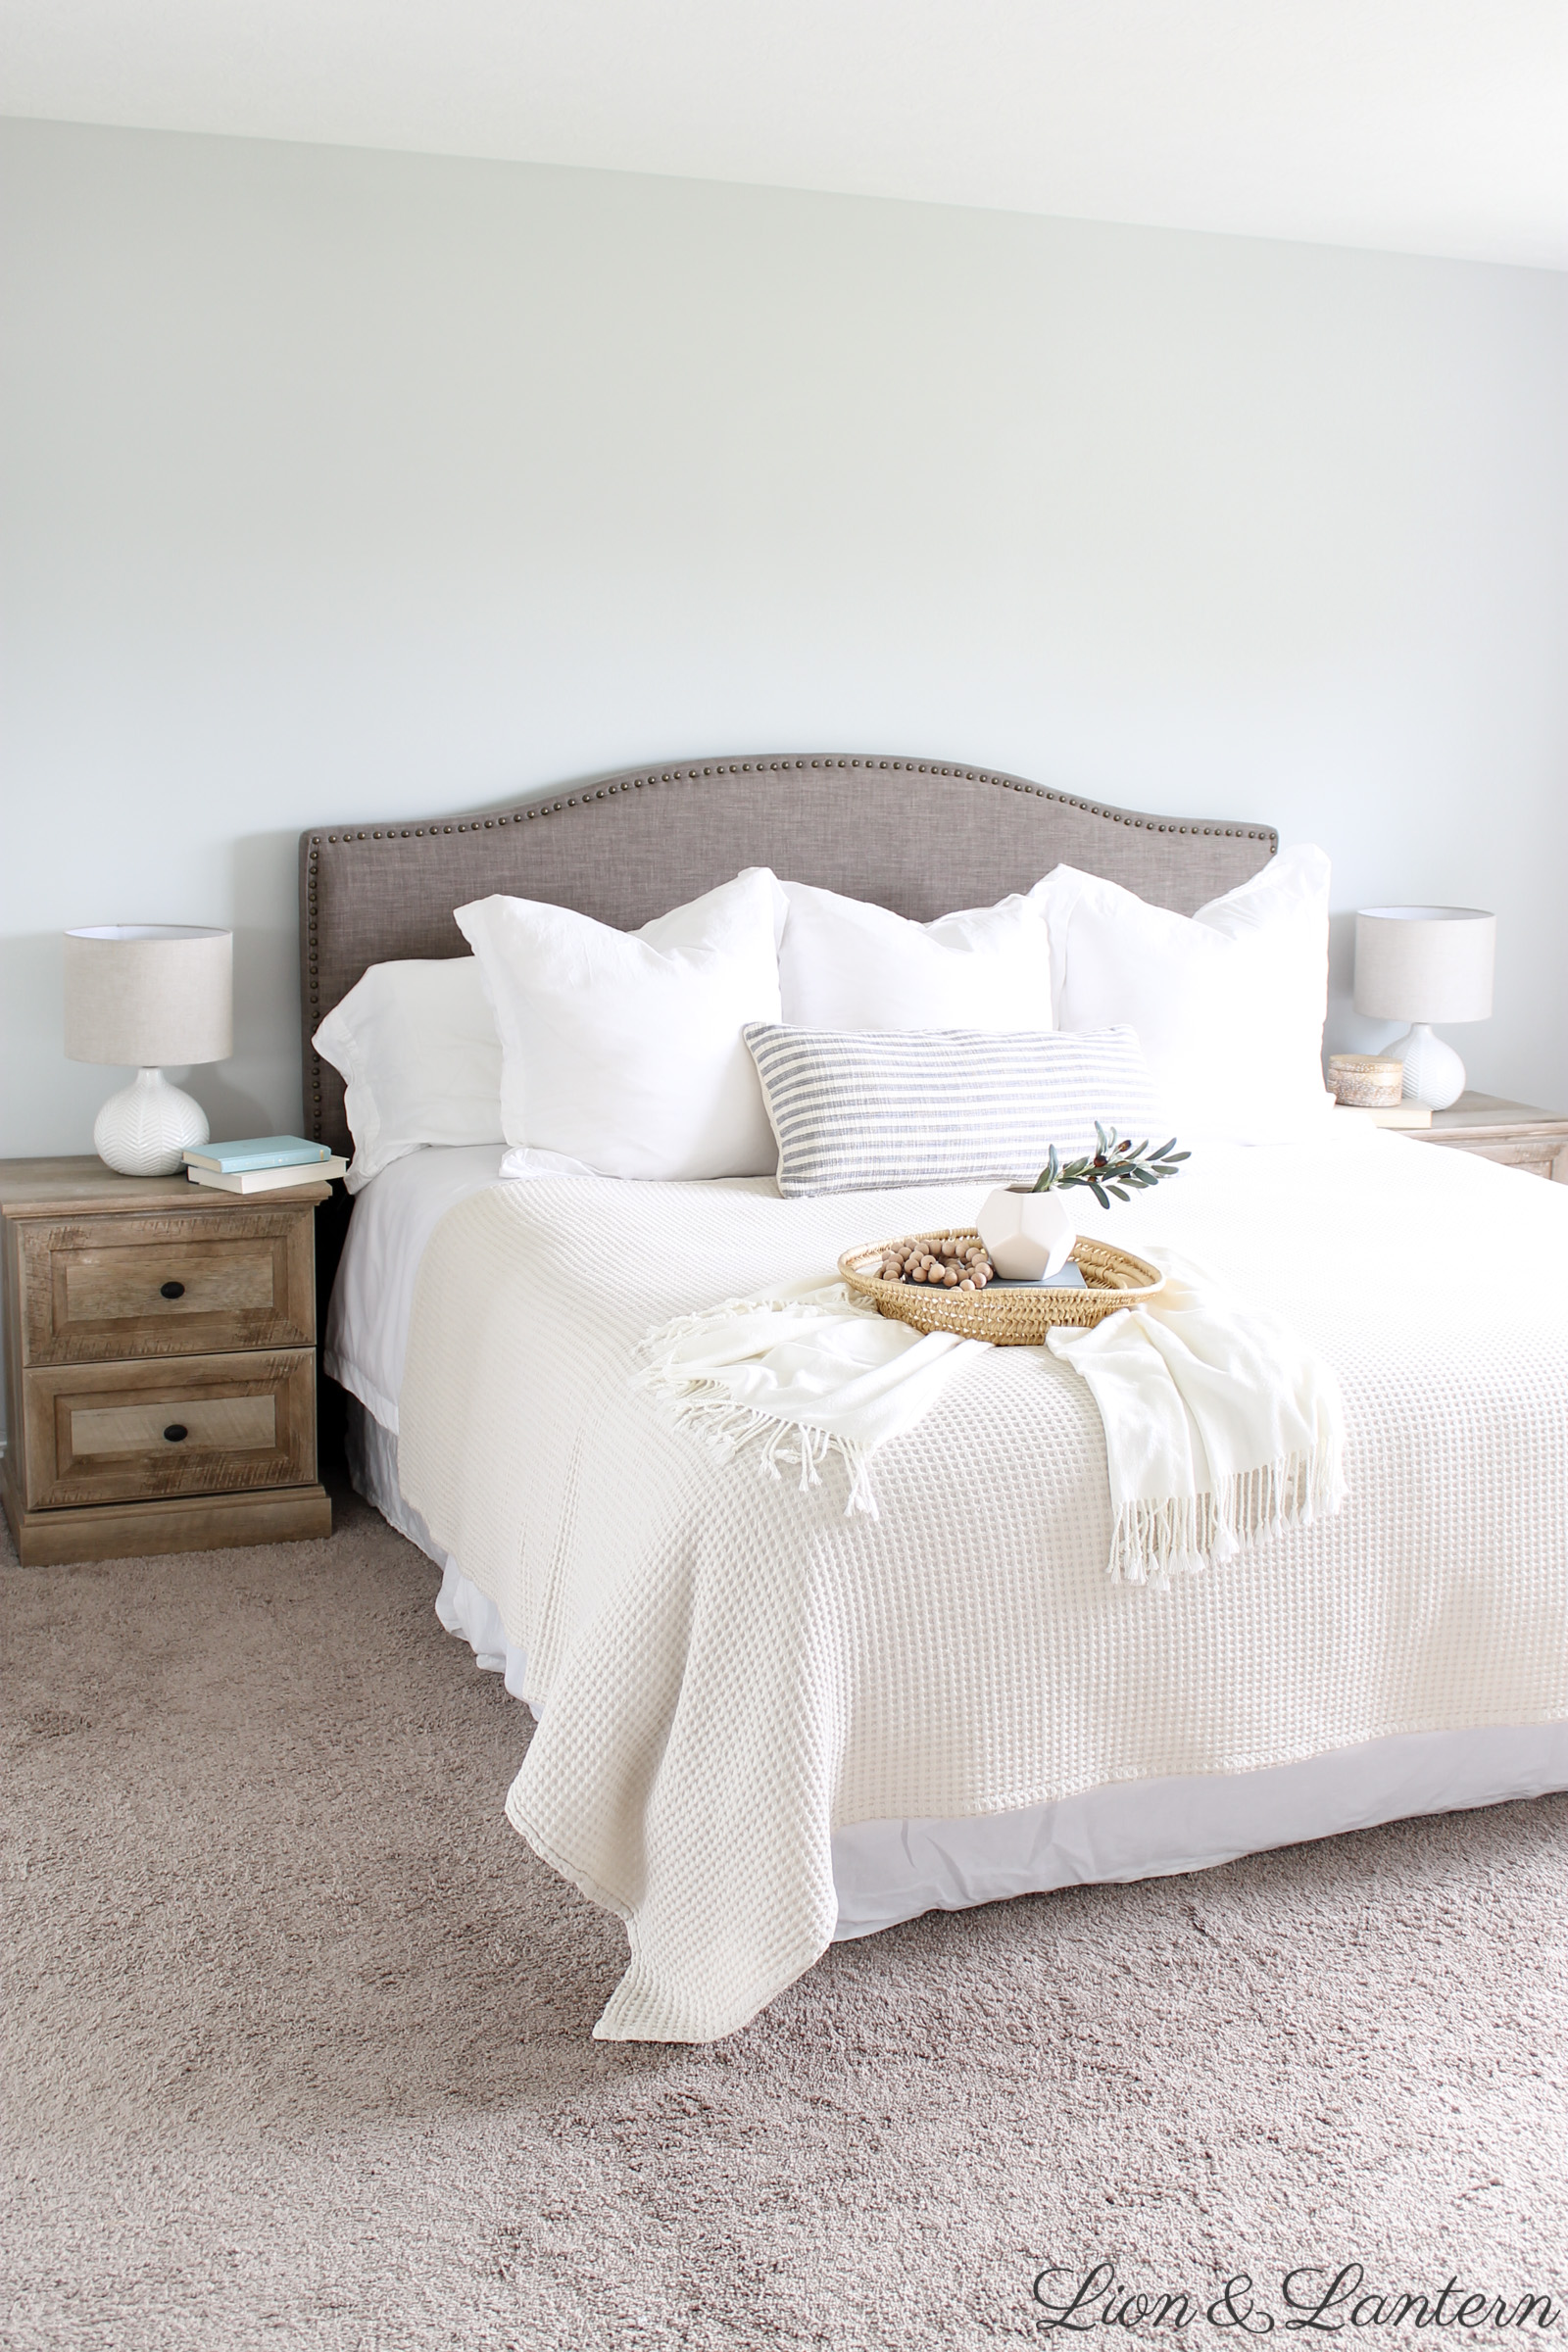 Modern Coastal Master Bedroom at LionAndLantern.com | coastal farmhouse, boho, minimalist, California, IKEA Hemnes dresser, white bedding, thrifted decor, upholstered headboard, baskets, books